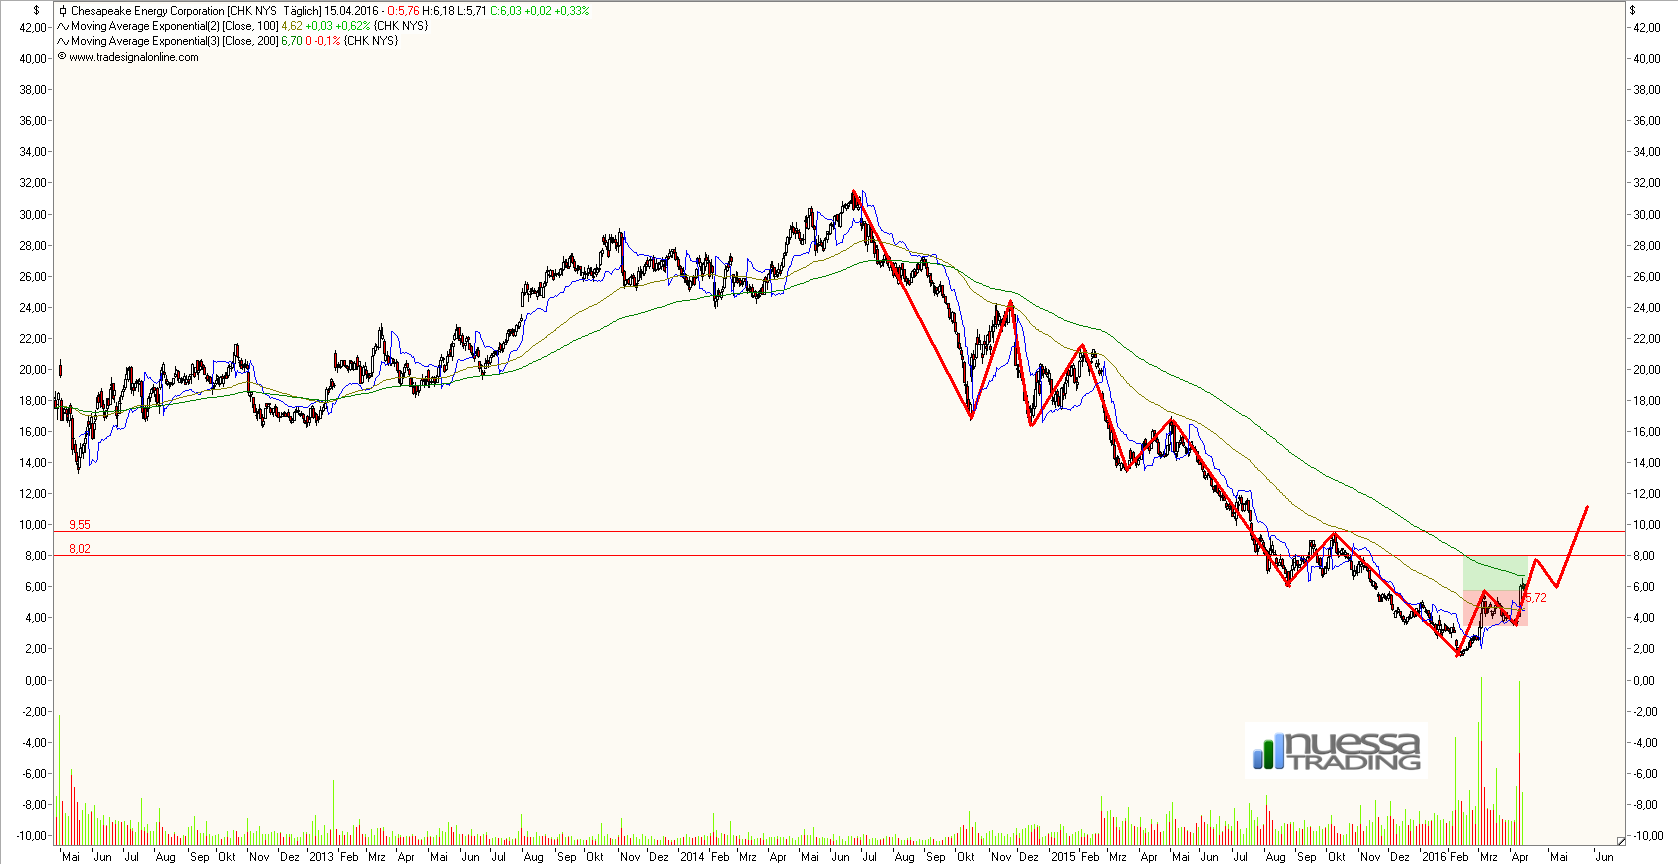 chesapeake_energy_daily.png